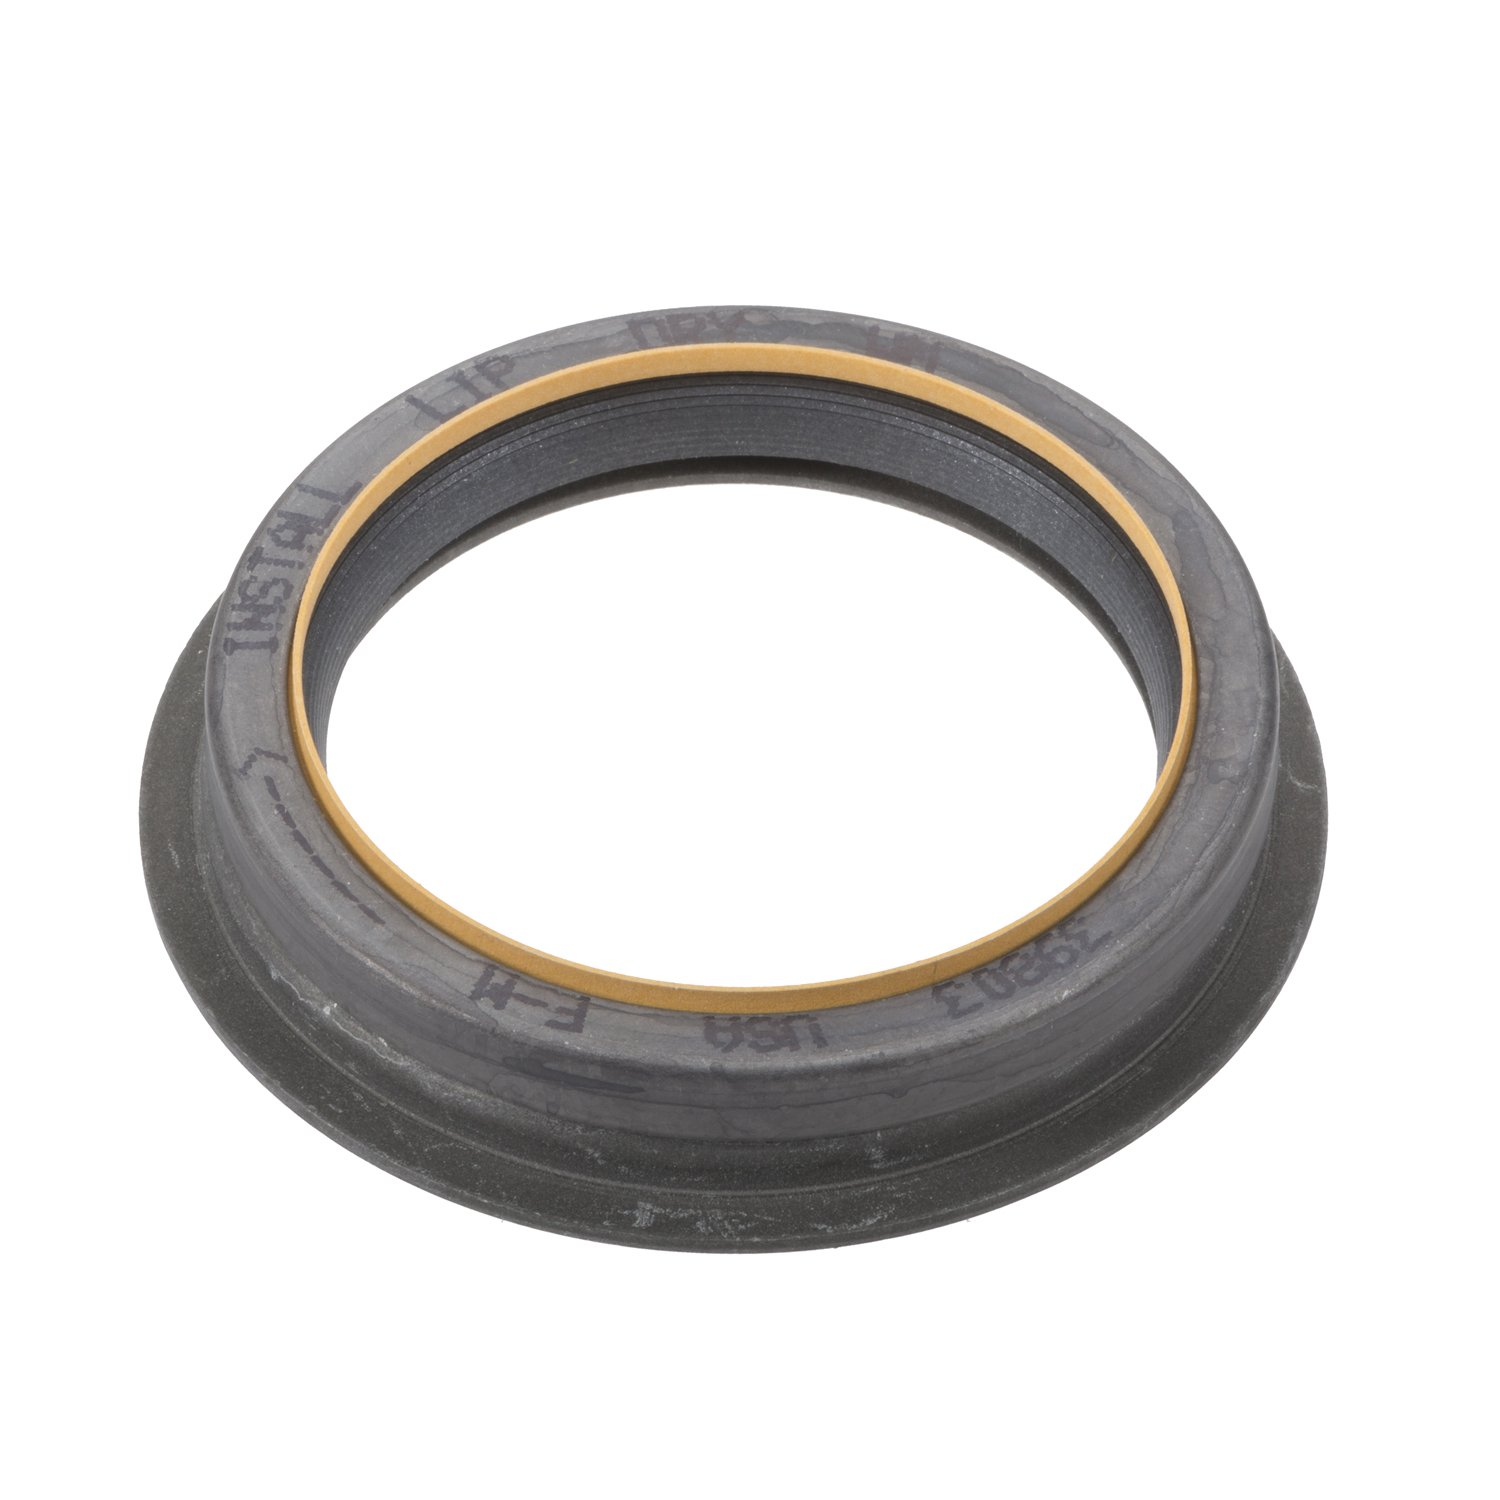 National 39803 Oil Seal